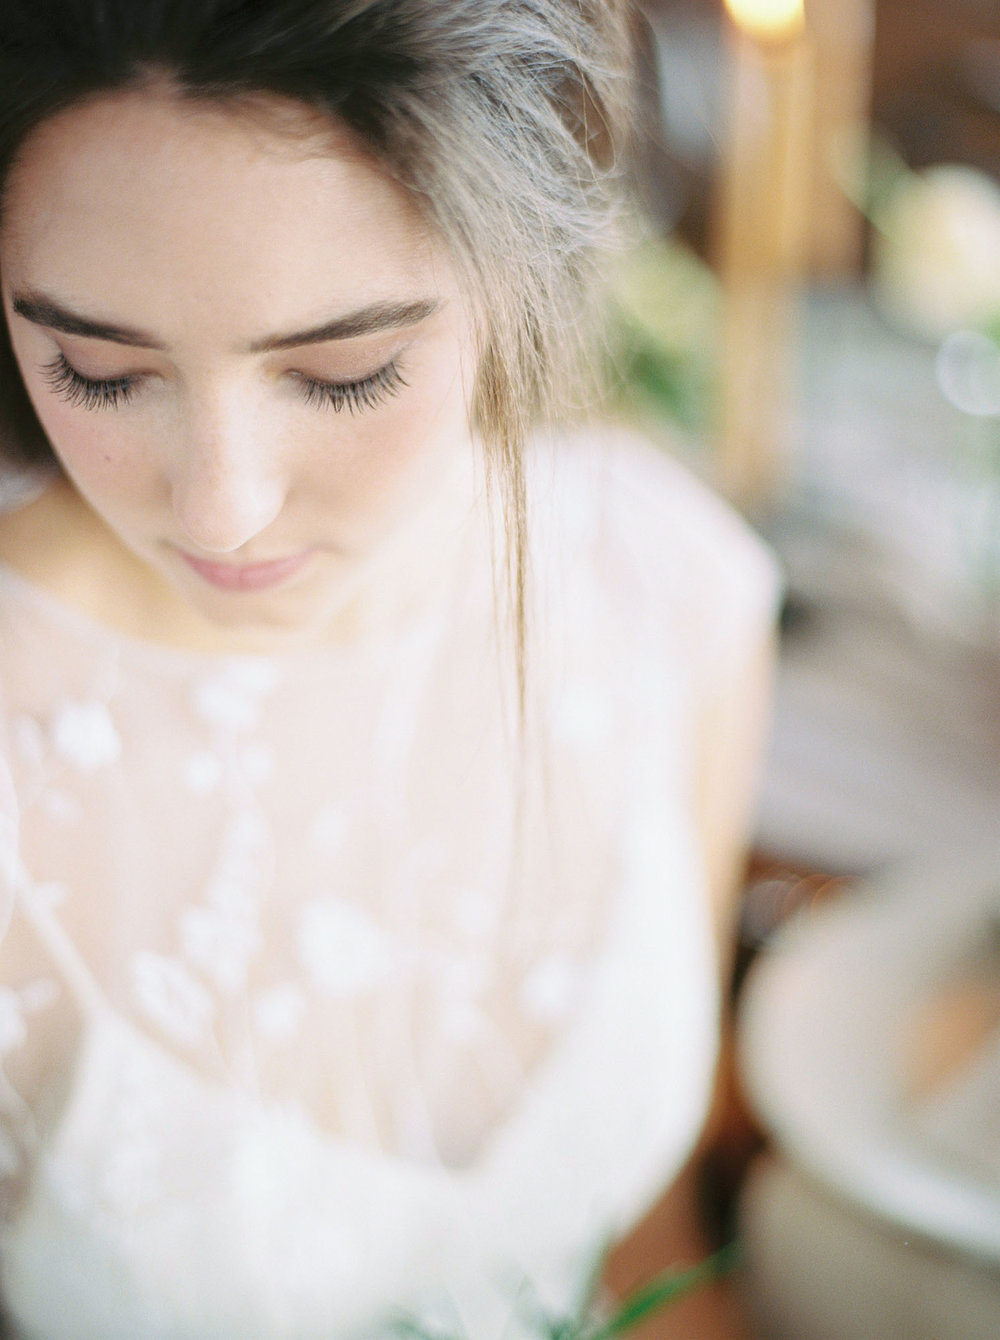 will-reid-photo-vineyard-bride-swish-list-kurtz-orchards-market-niagara-on-the-lake-wedding-editorial-26.jpg